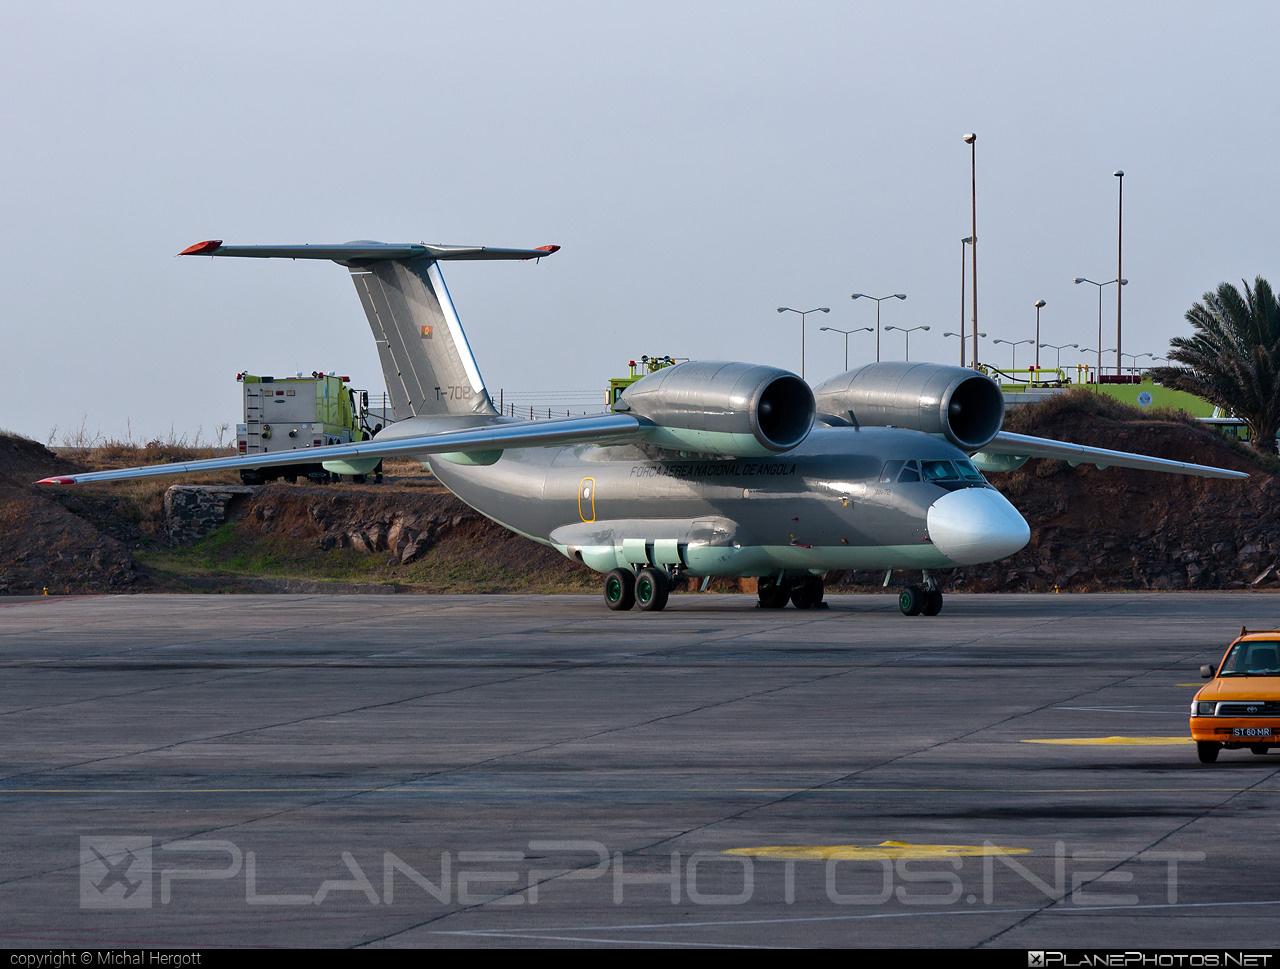 Antonov An-72 - T-708 operated by Força Aérea Nacional de Angola (National Air Force of Angola) #an72 #antonov #antonov72